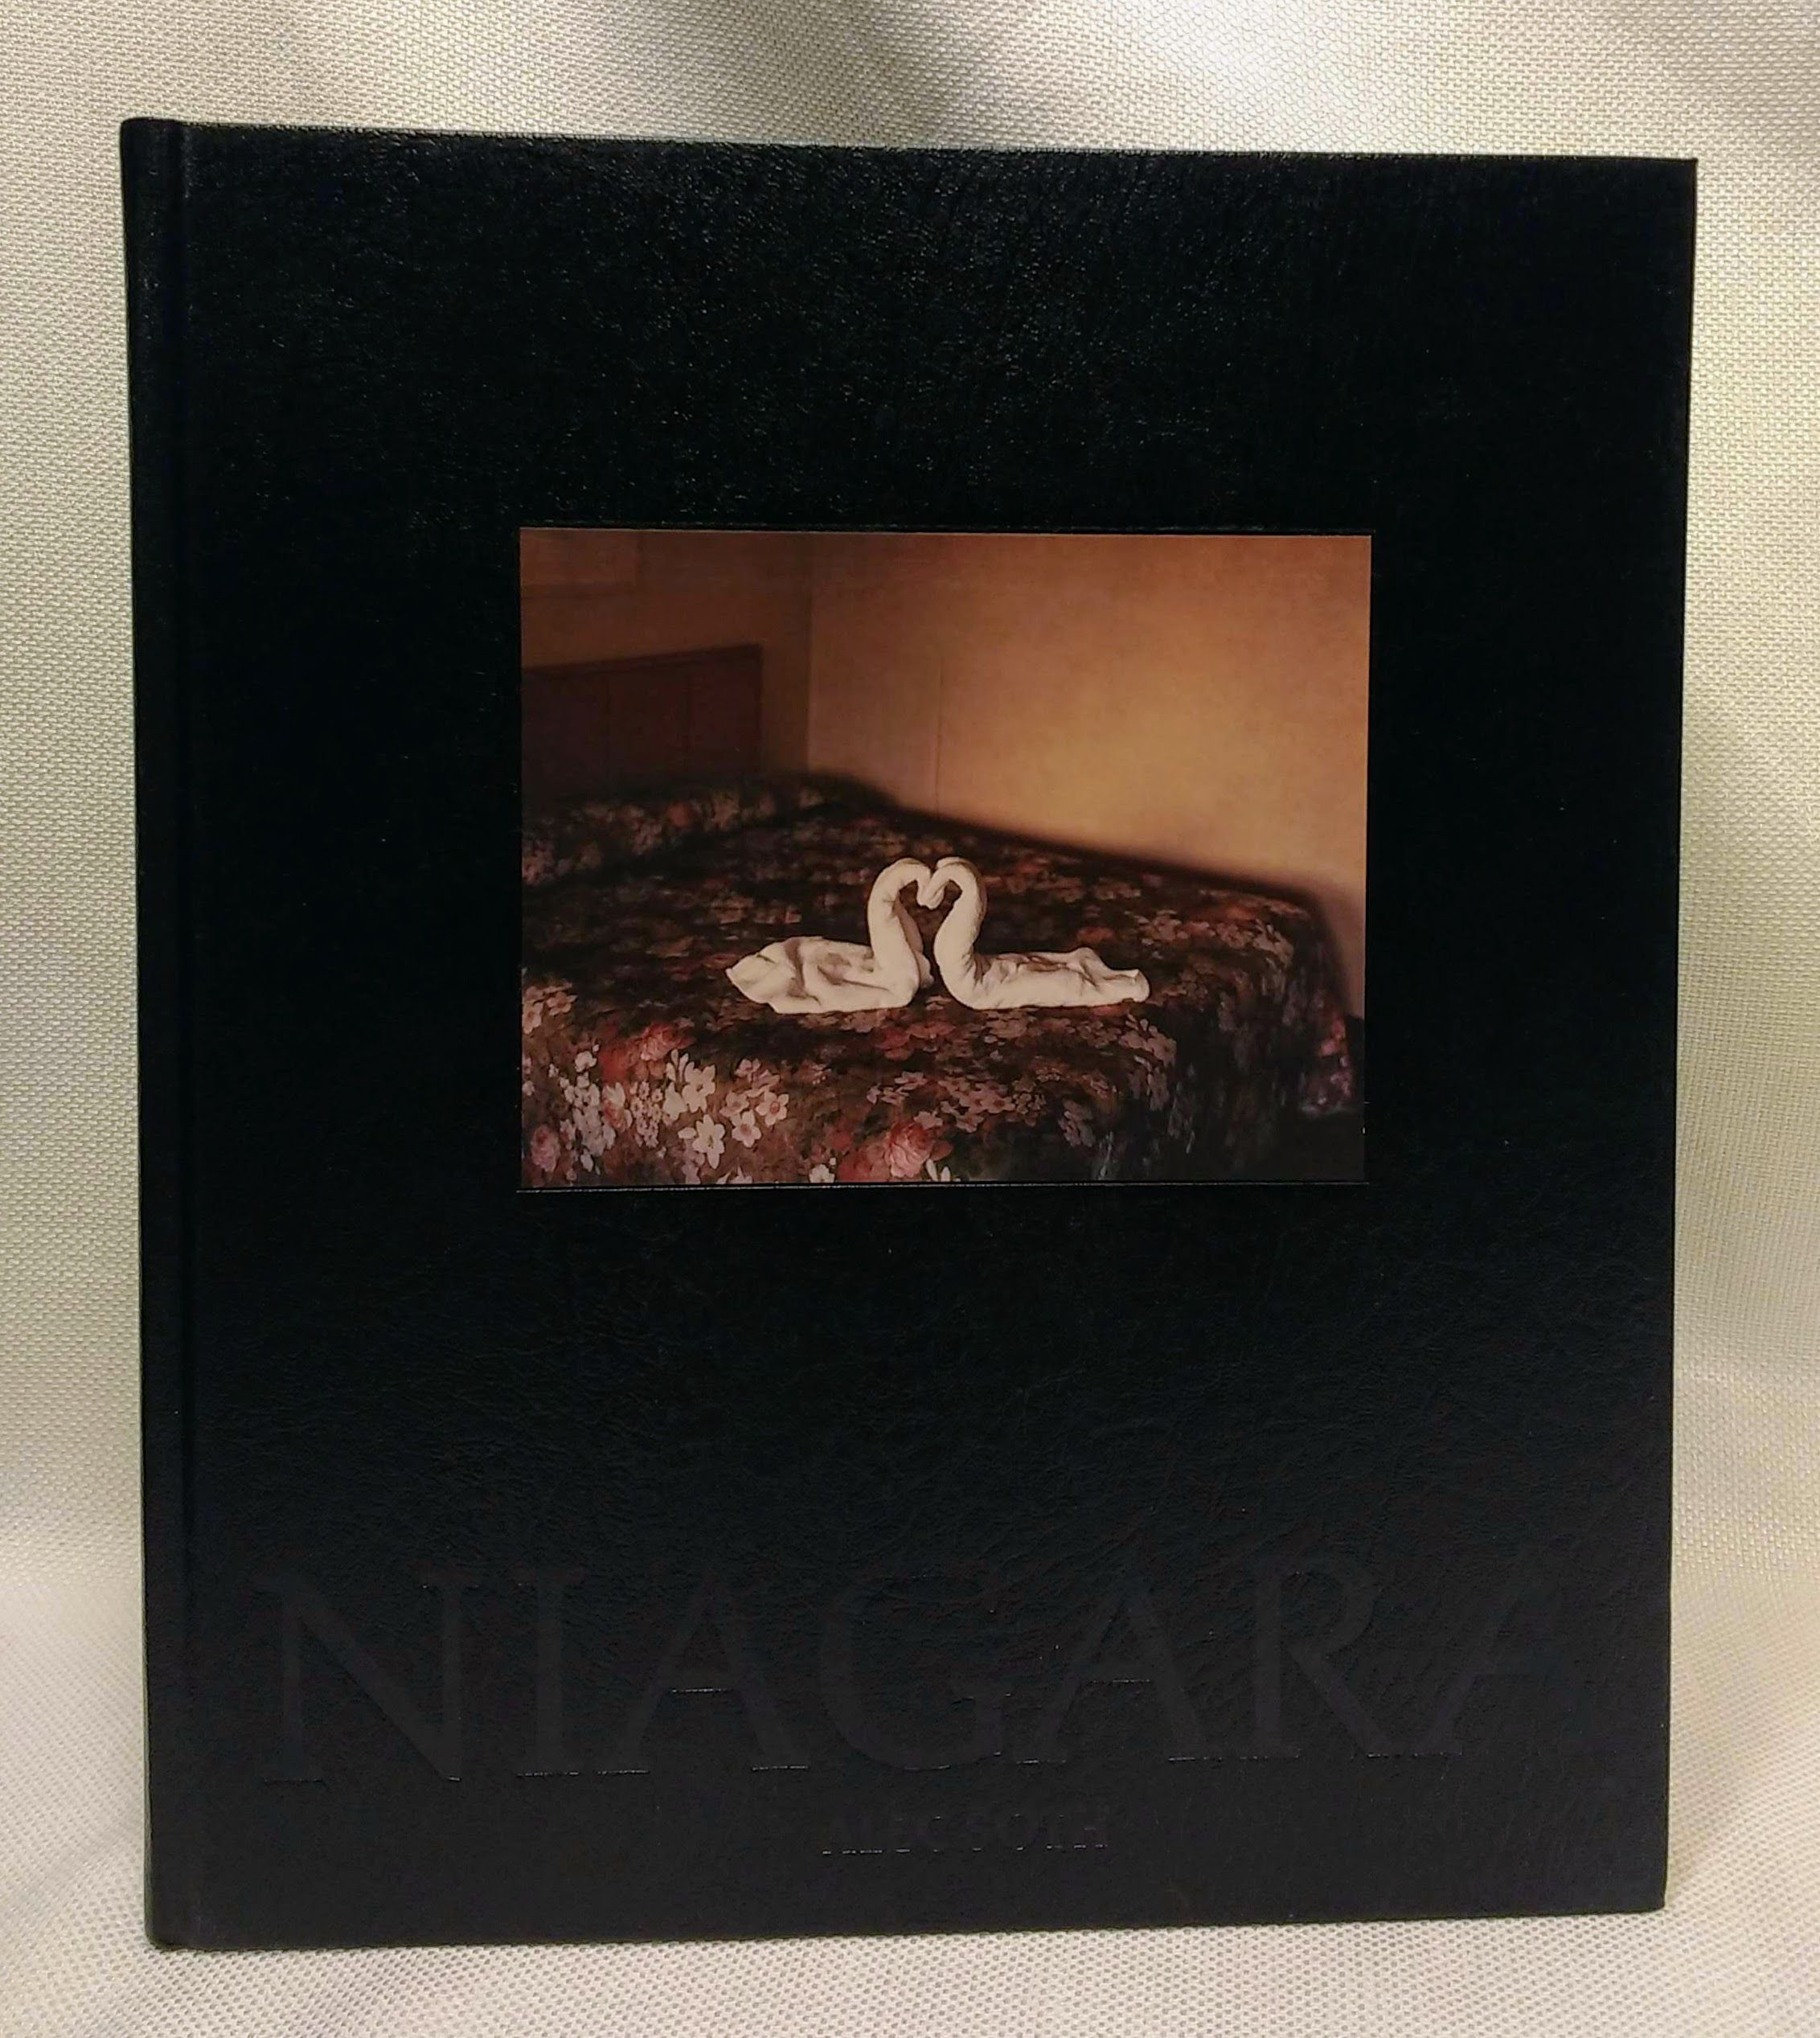 NIAGARA, Alec Soth; Philip Brookman; Richard Ford